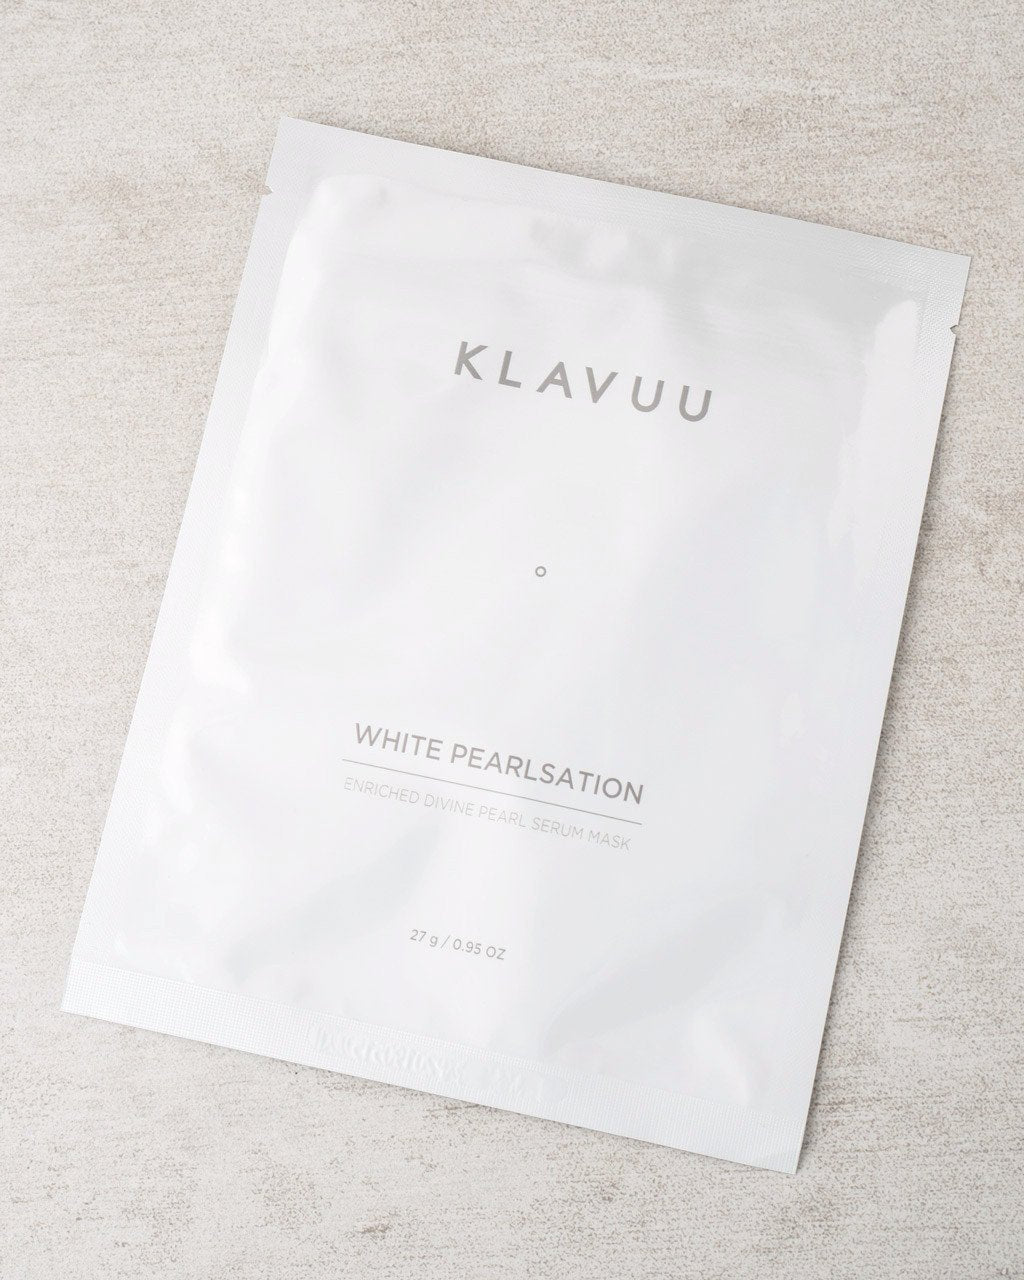 KLAVUU WHITE Pearlsation Pearl Serum Mask, sheet mask, skincare, skin care